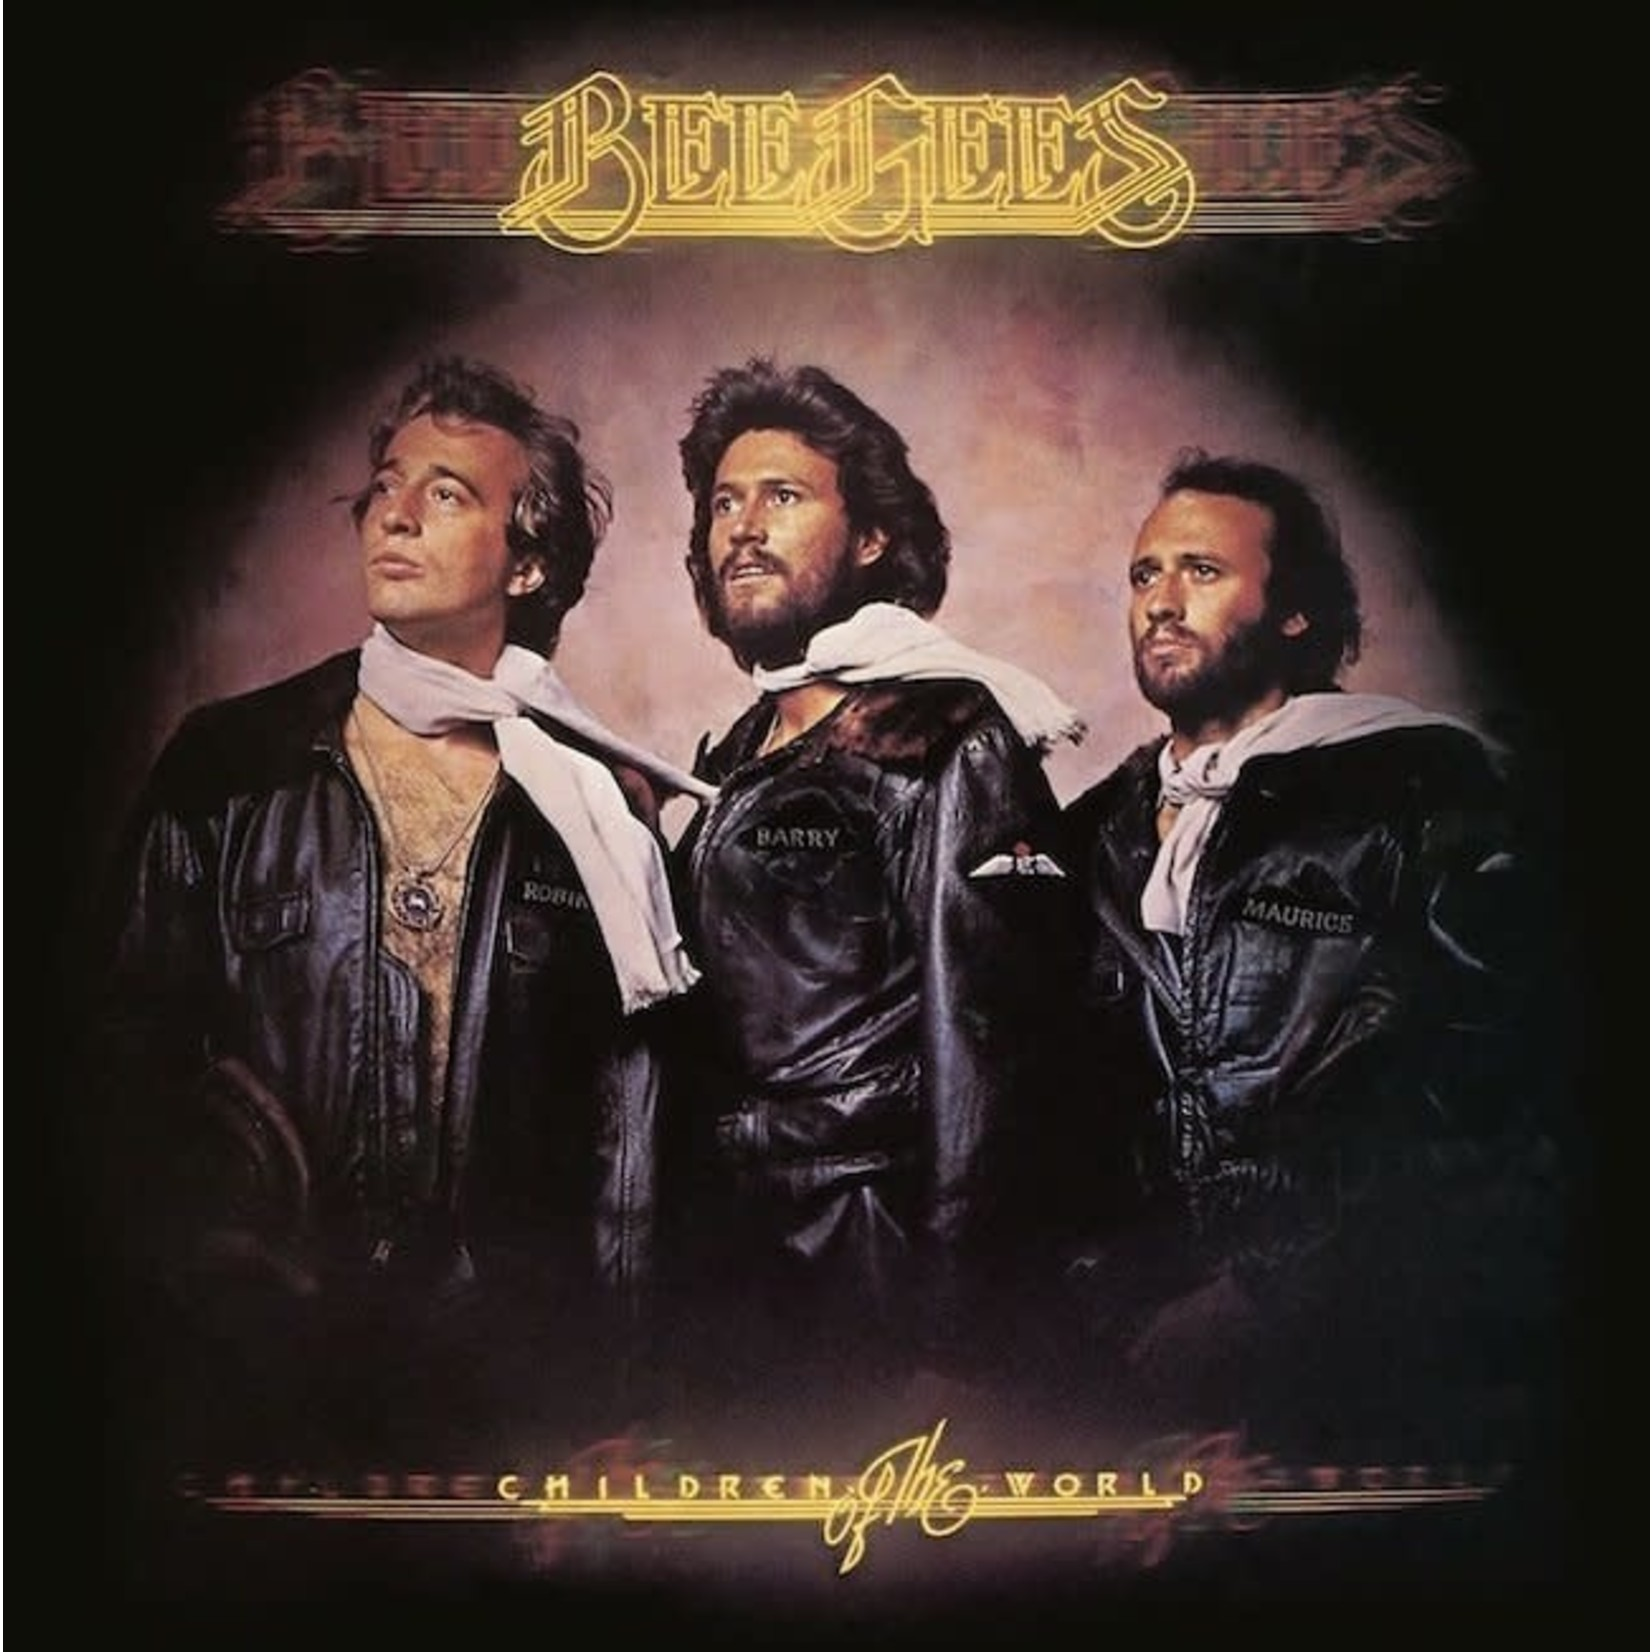 [Vintage] Bee Gees: Children of the World